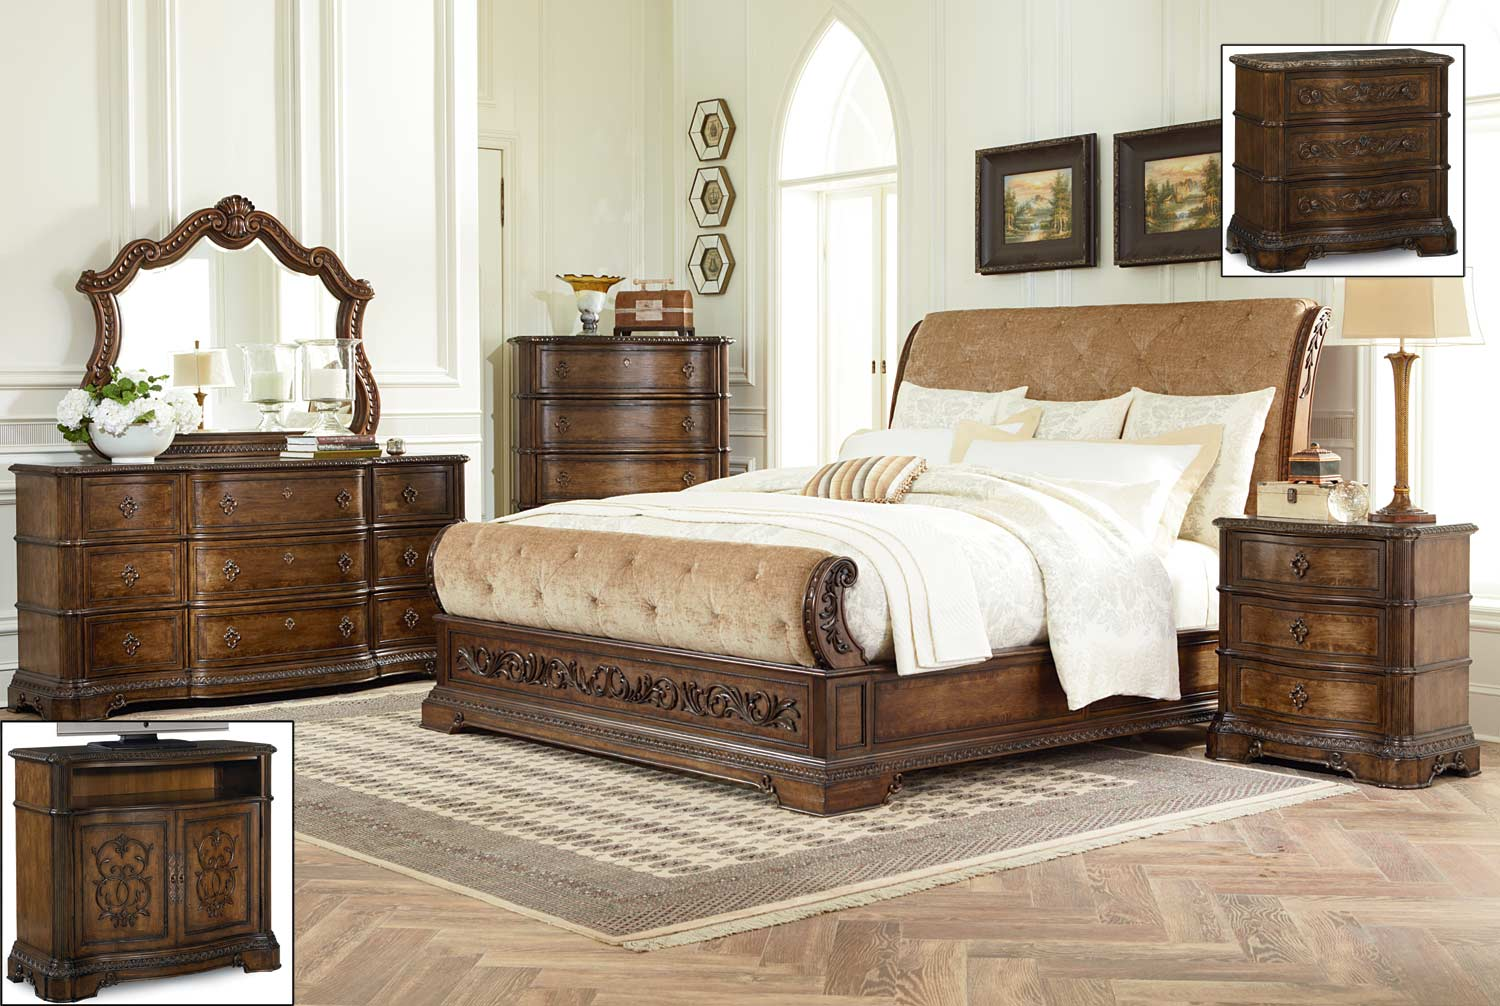 Legacy Classic Pemberleigh Upholstered Sleigh Bedroom Set - Brandy/Burnished Edges